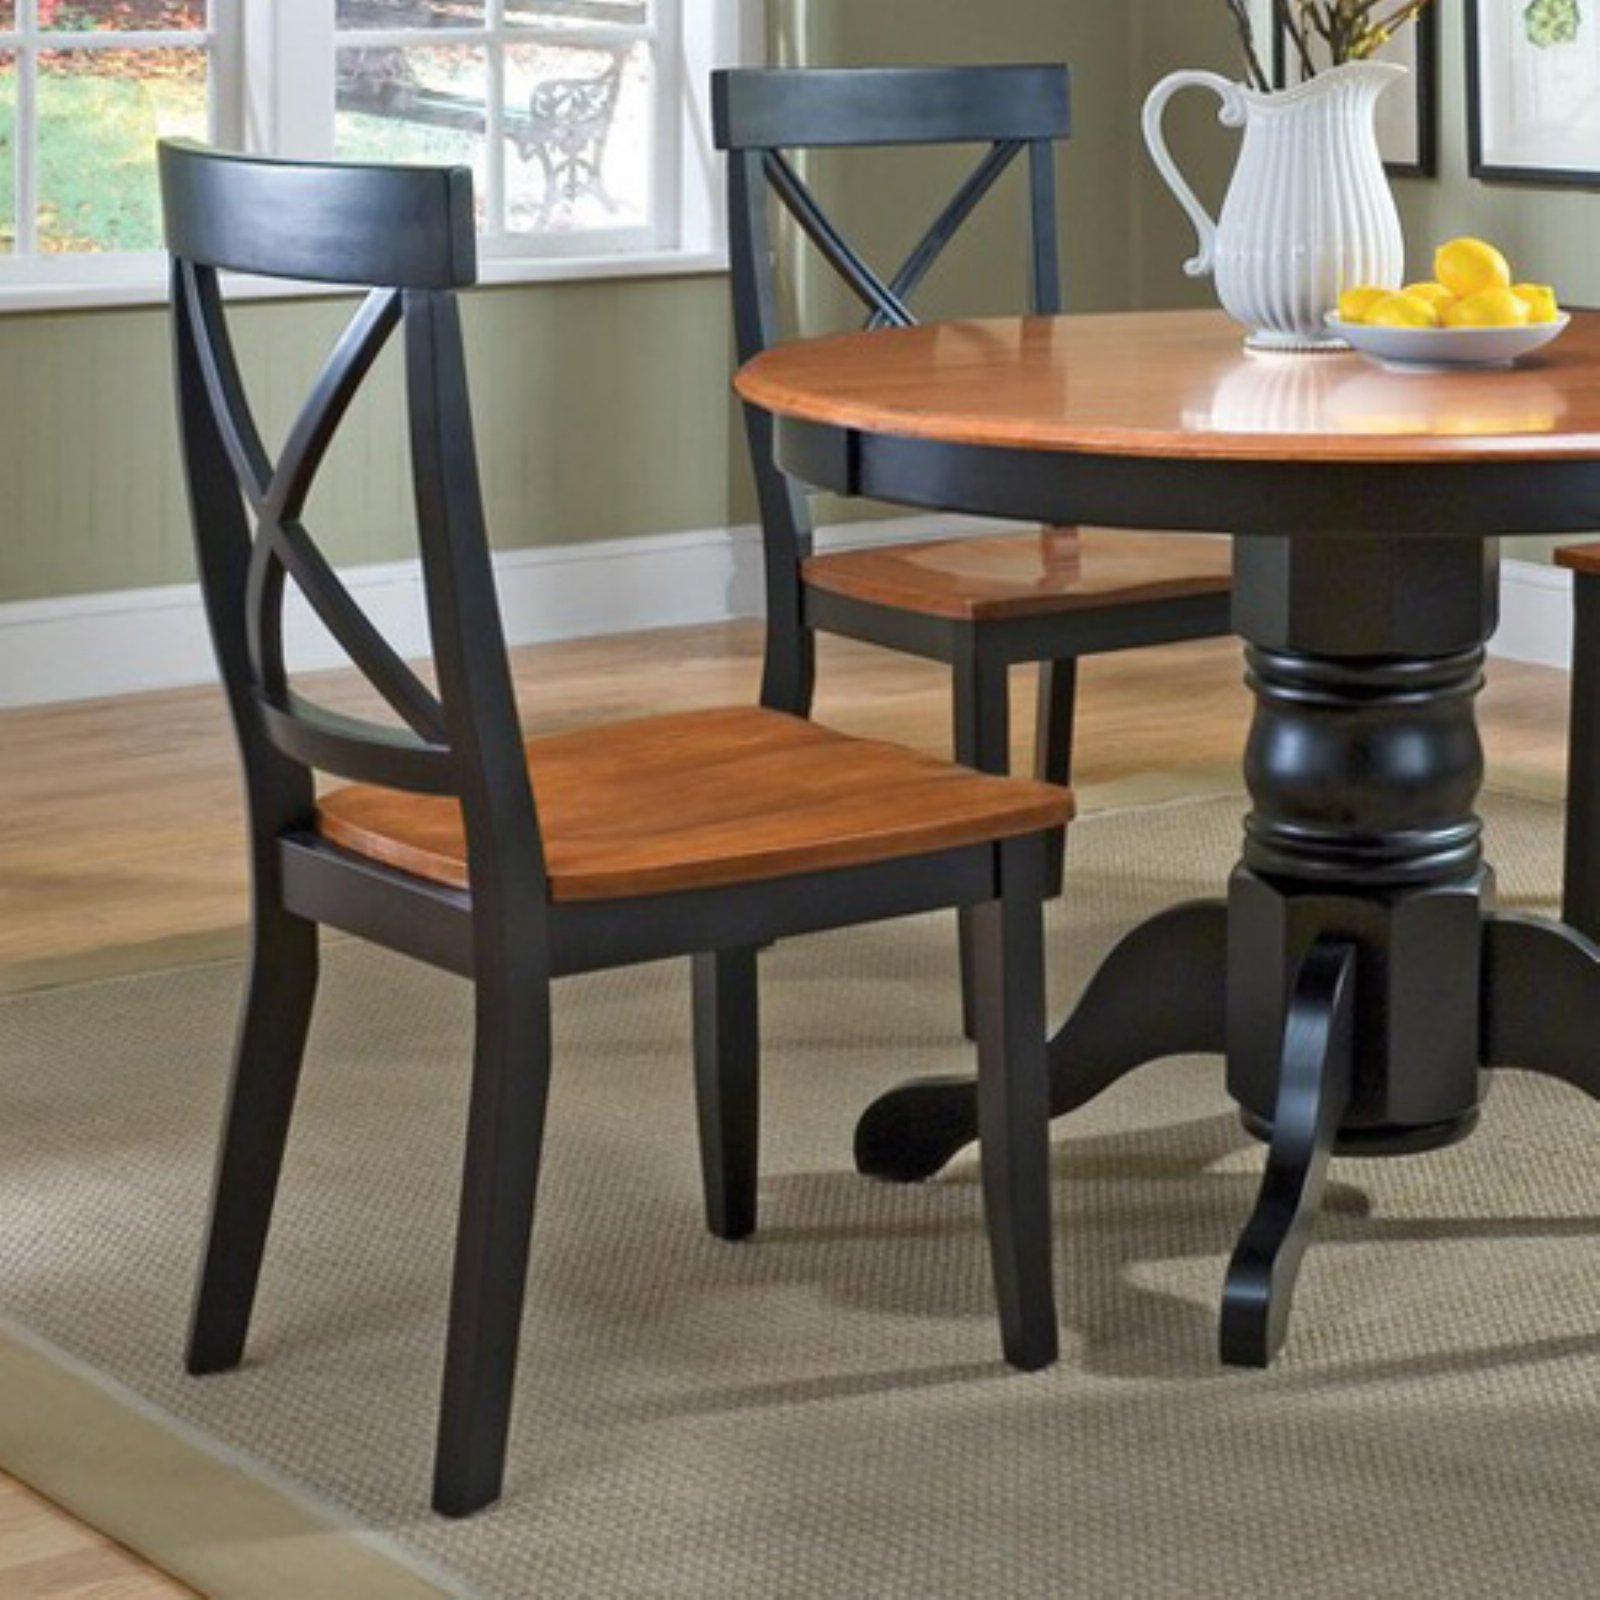 Home Styles Dining Chairs, Black Cottage Oak, Set of 2 by HomeStyles